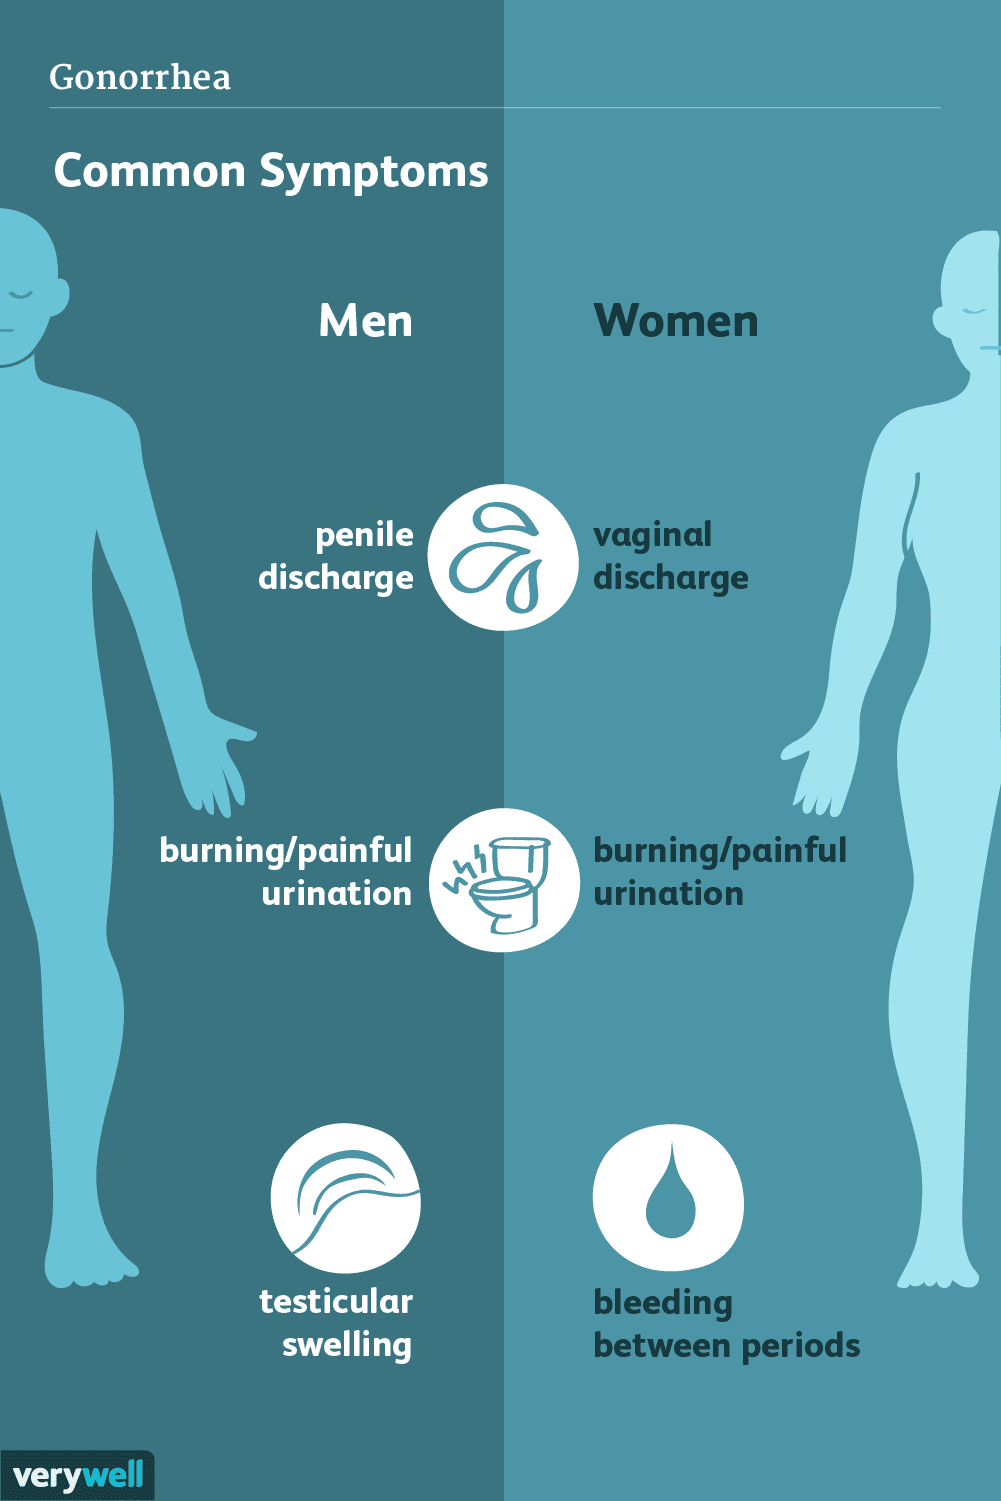 Gonorrhea Signs, Symptoms, And Complications. Moist Signs Of Stroke. Teddy Signs. Airfield Signs. Owl Signs. Necrotizing Signs. Uranus Signs. Traps Signs. Psoriasis Signs